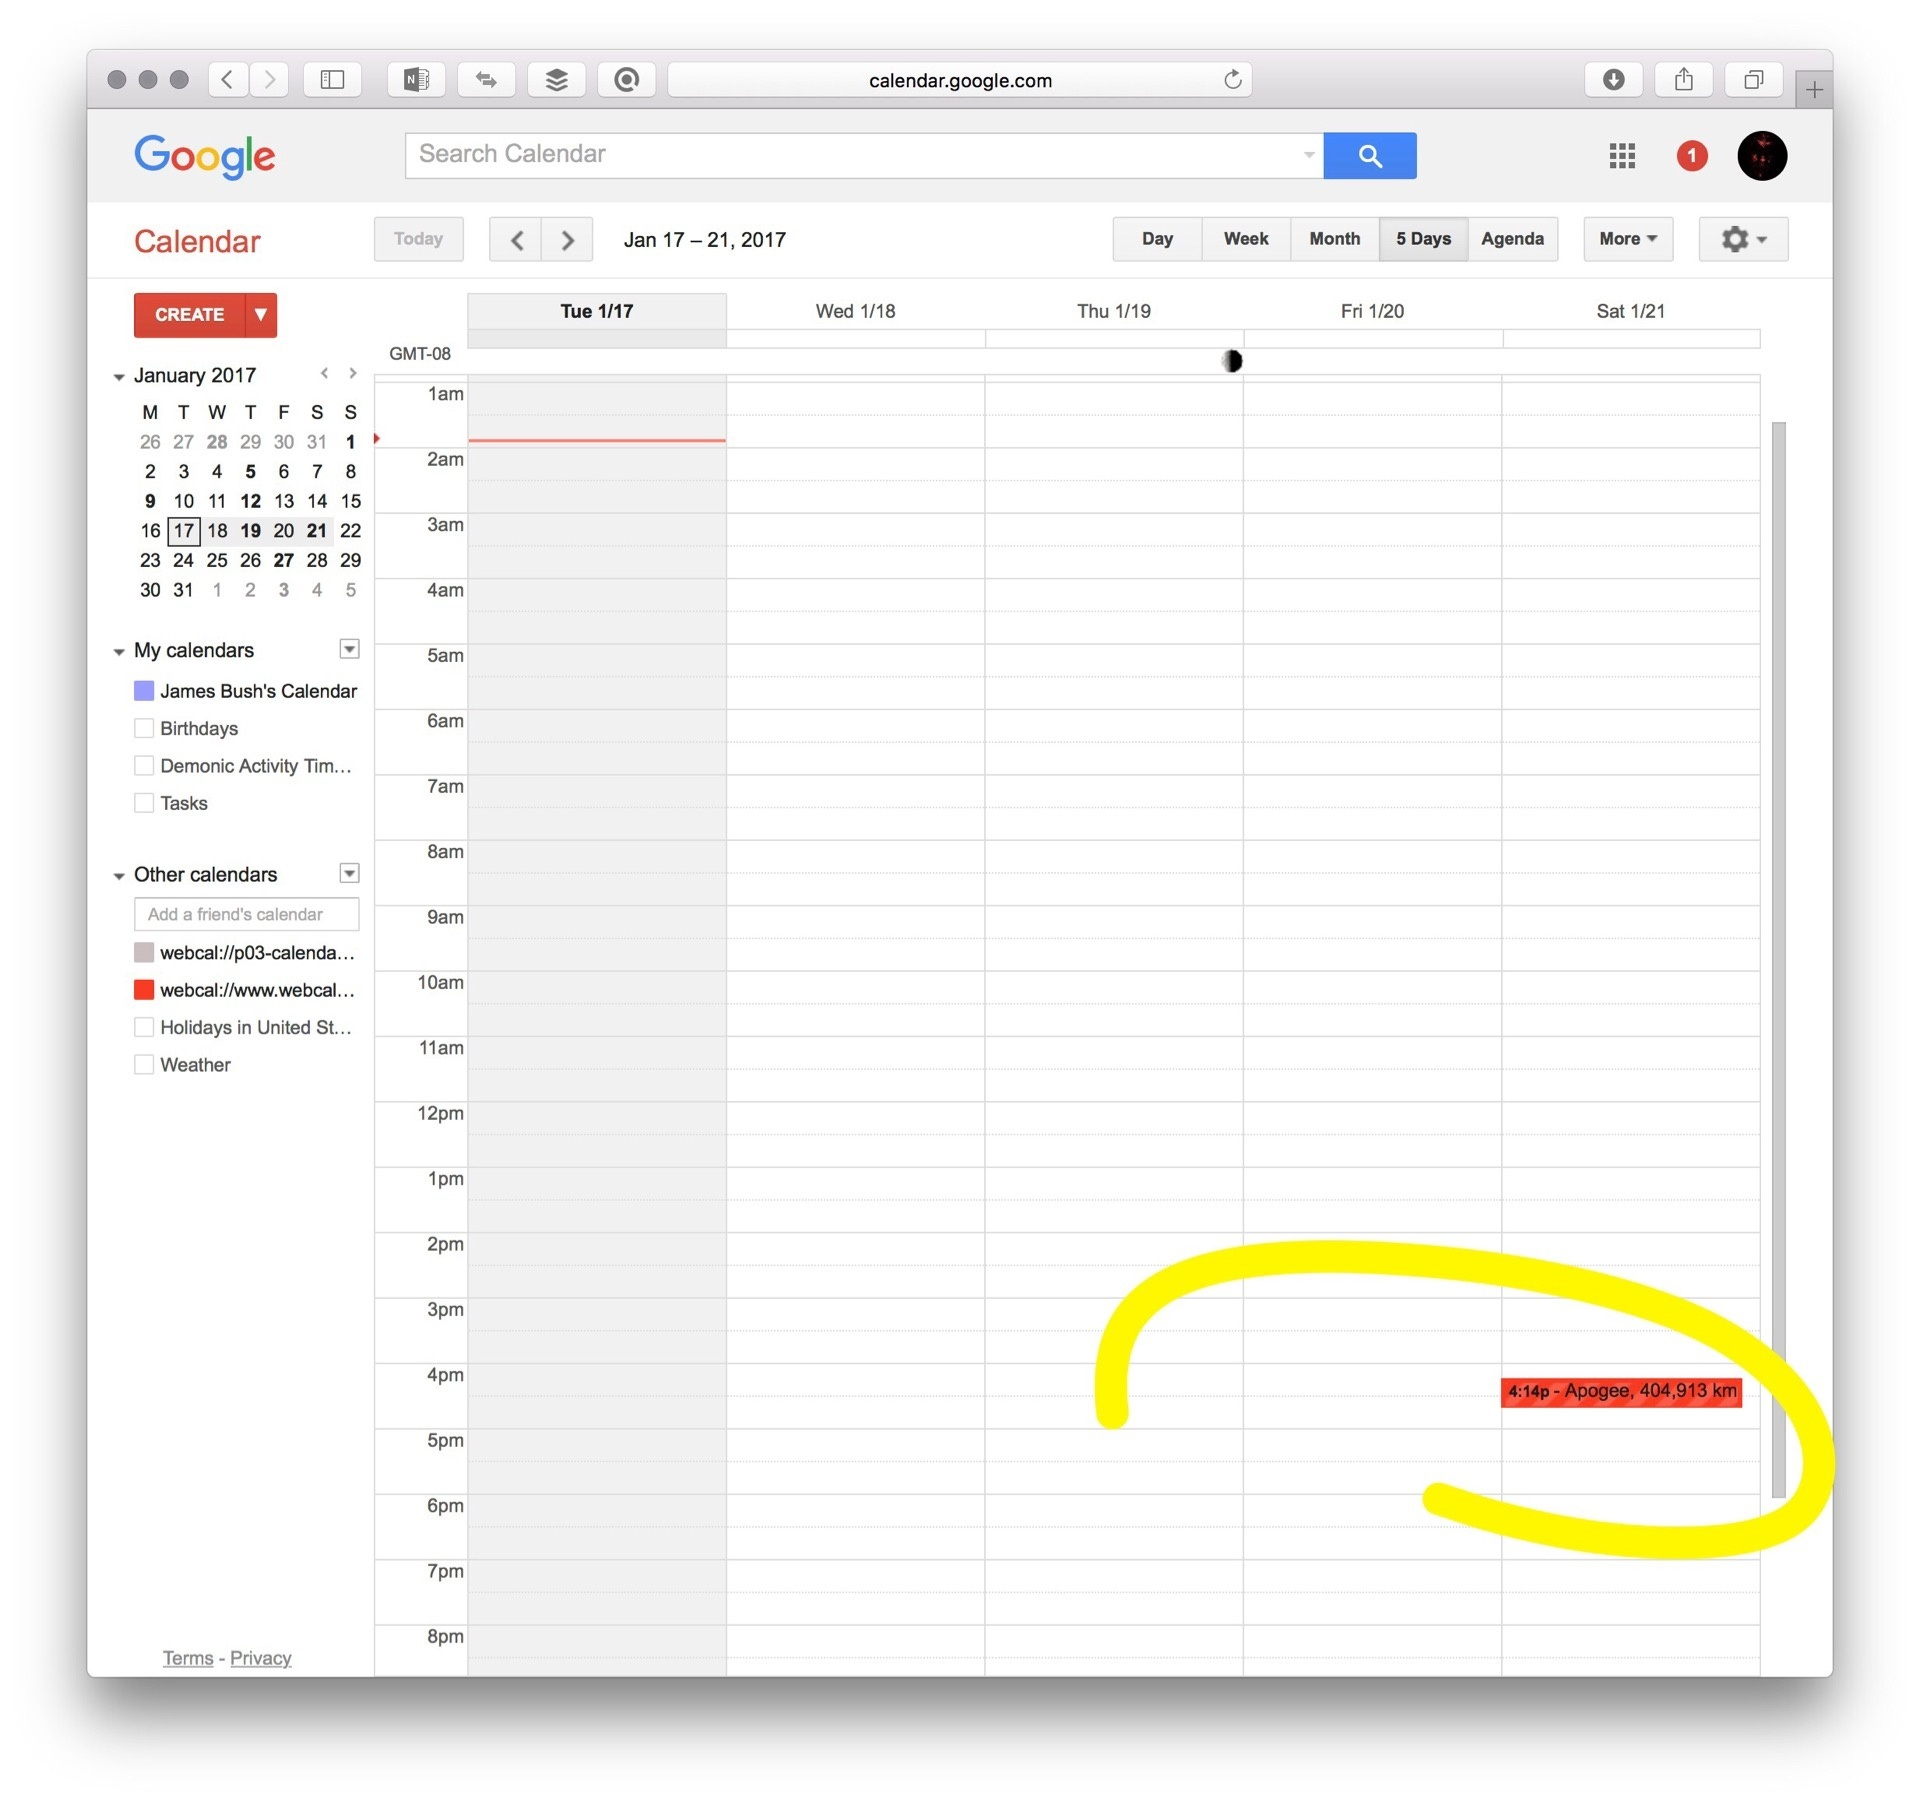 How to get my iCloud calendar to show in Google Calendar - Quora